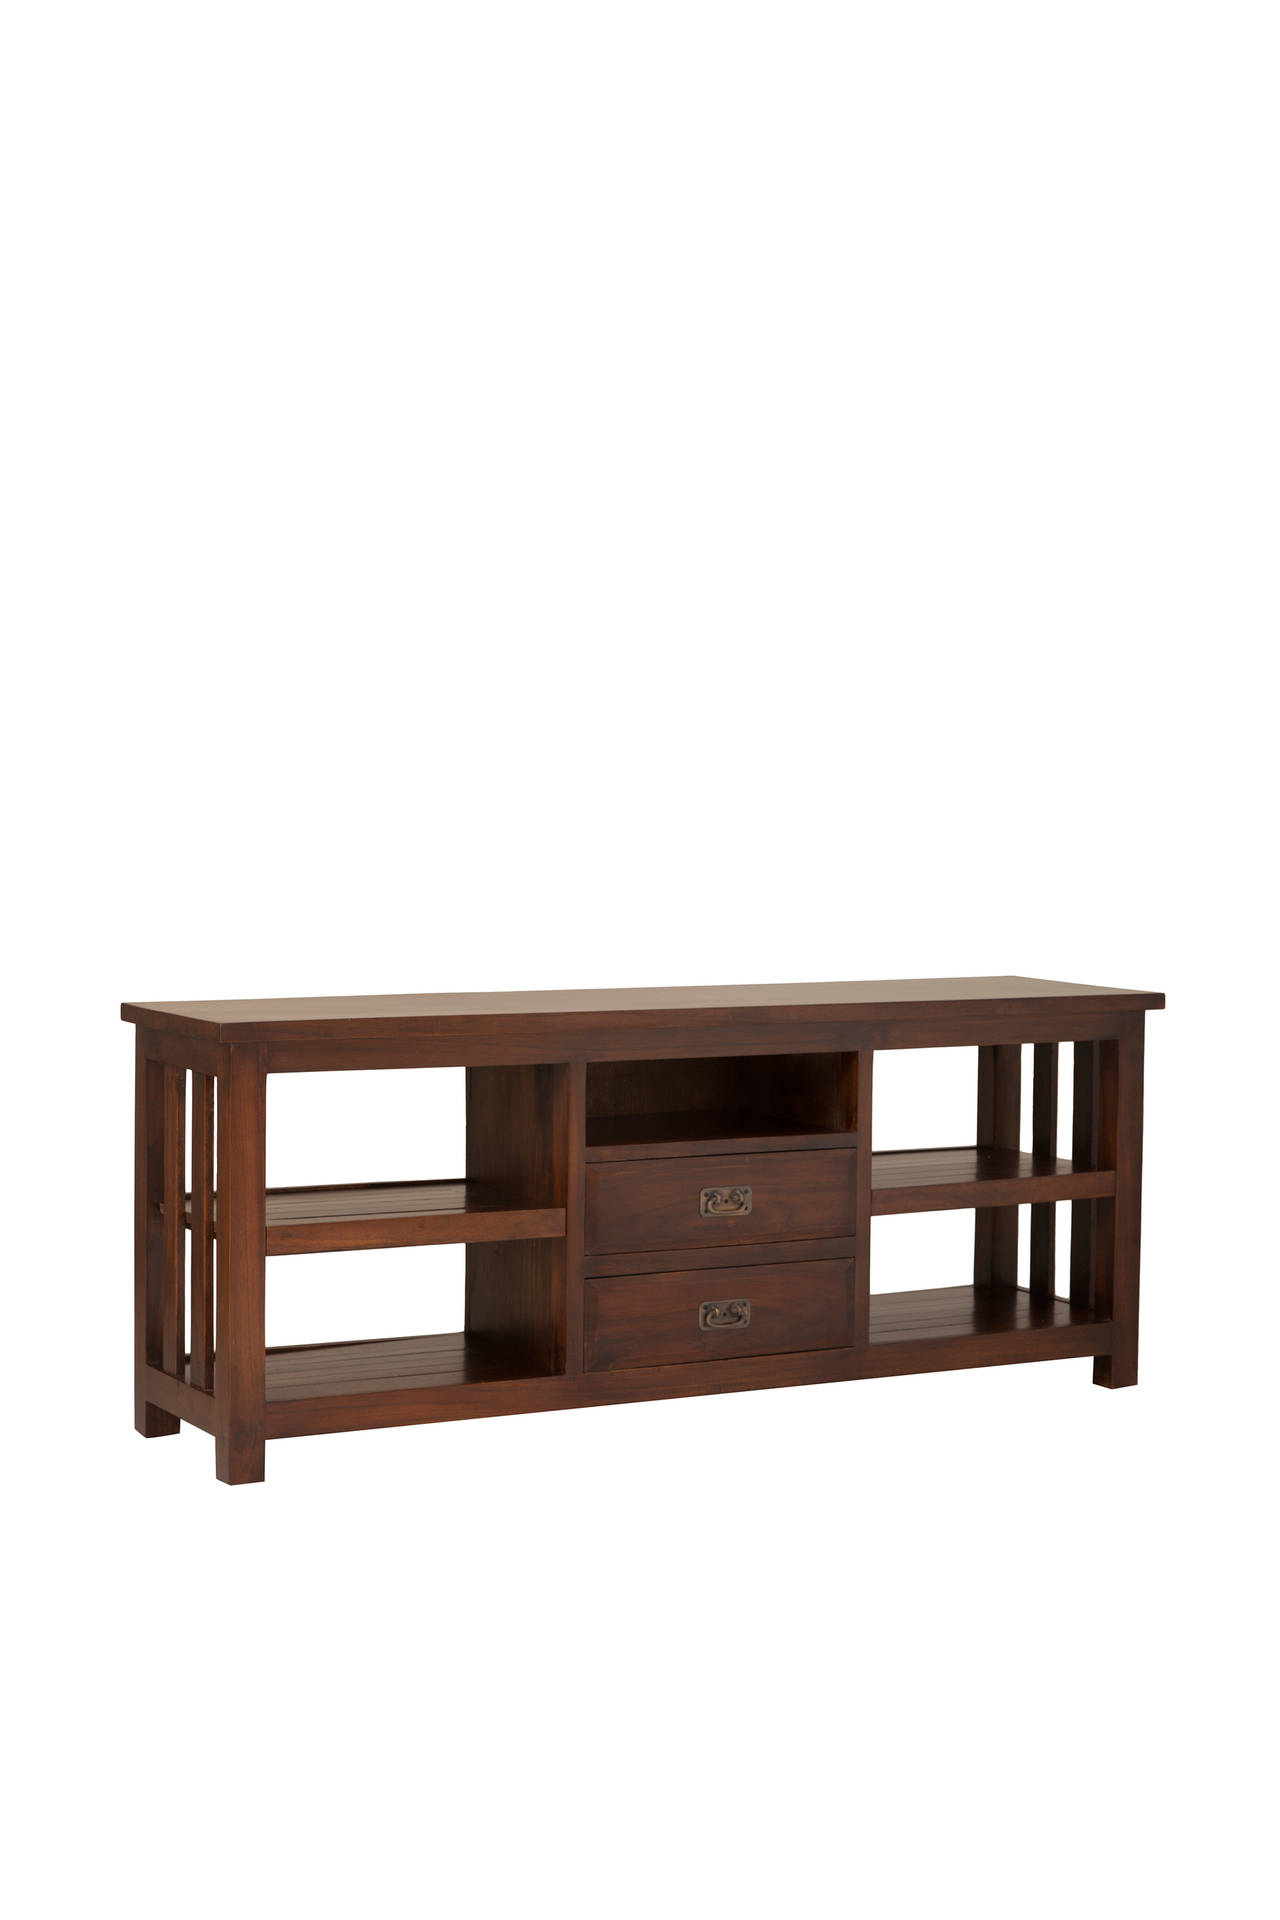 TV STAND 150/40/60 2drw